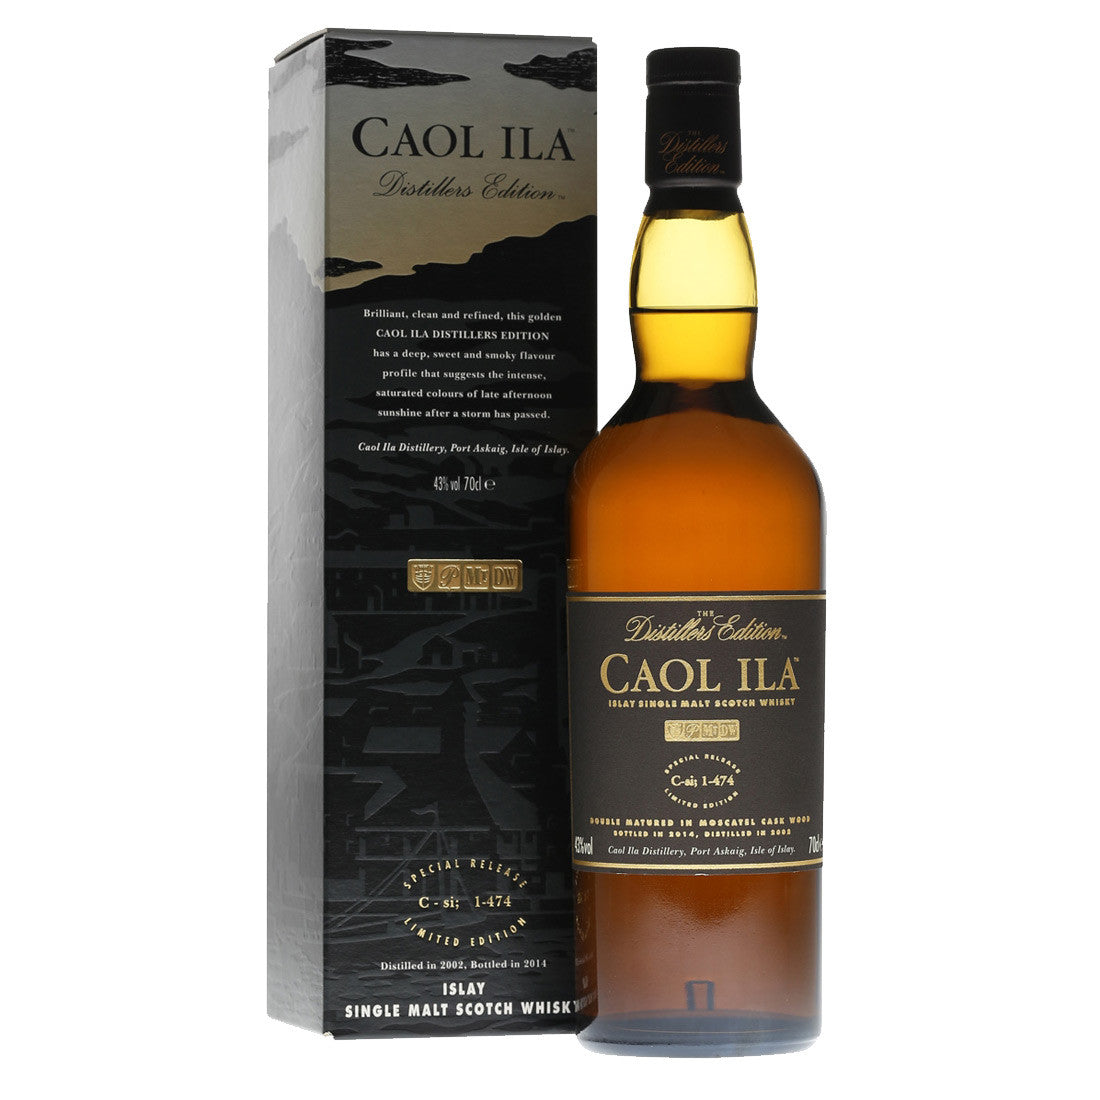 Caol Ila Double Matured Distillers Edition Islay Single Malt Whisky - 700ml Whiskey - Bevtools Bar and Beverage Tools | Alcohol and Liquor Delivery Makati, Metro Manila, Philippines